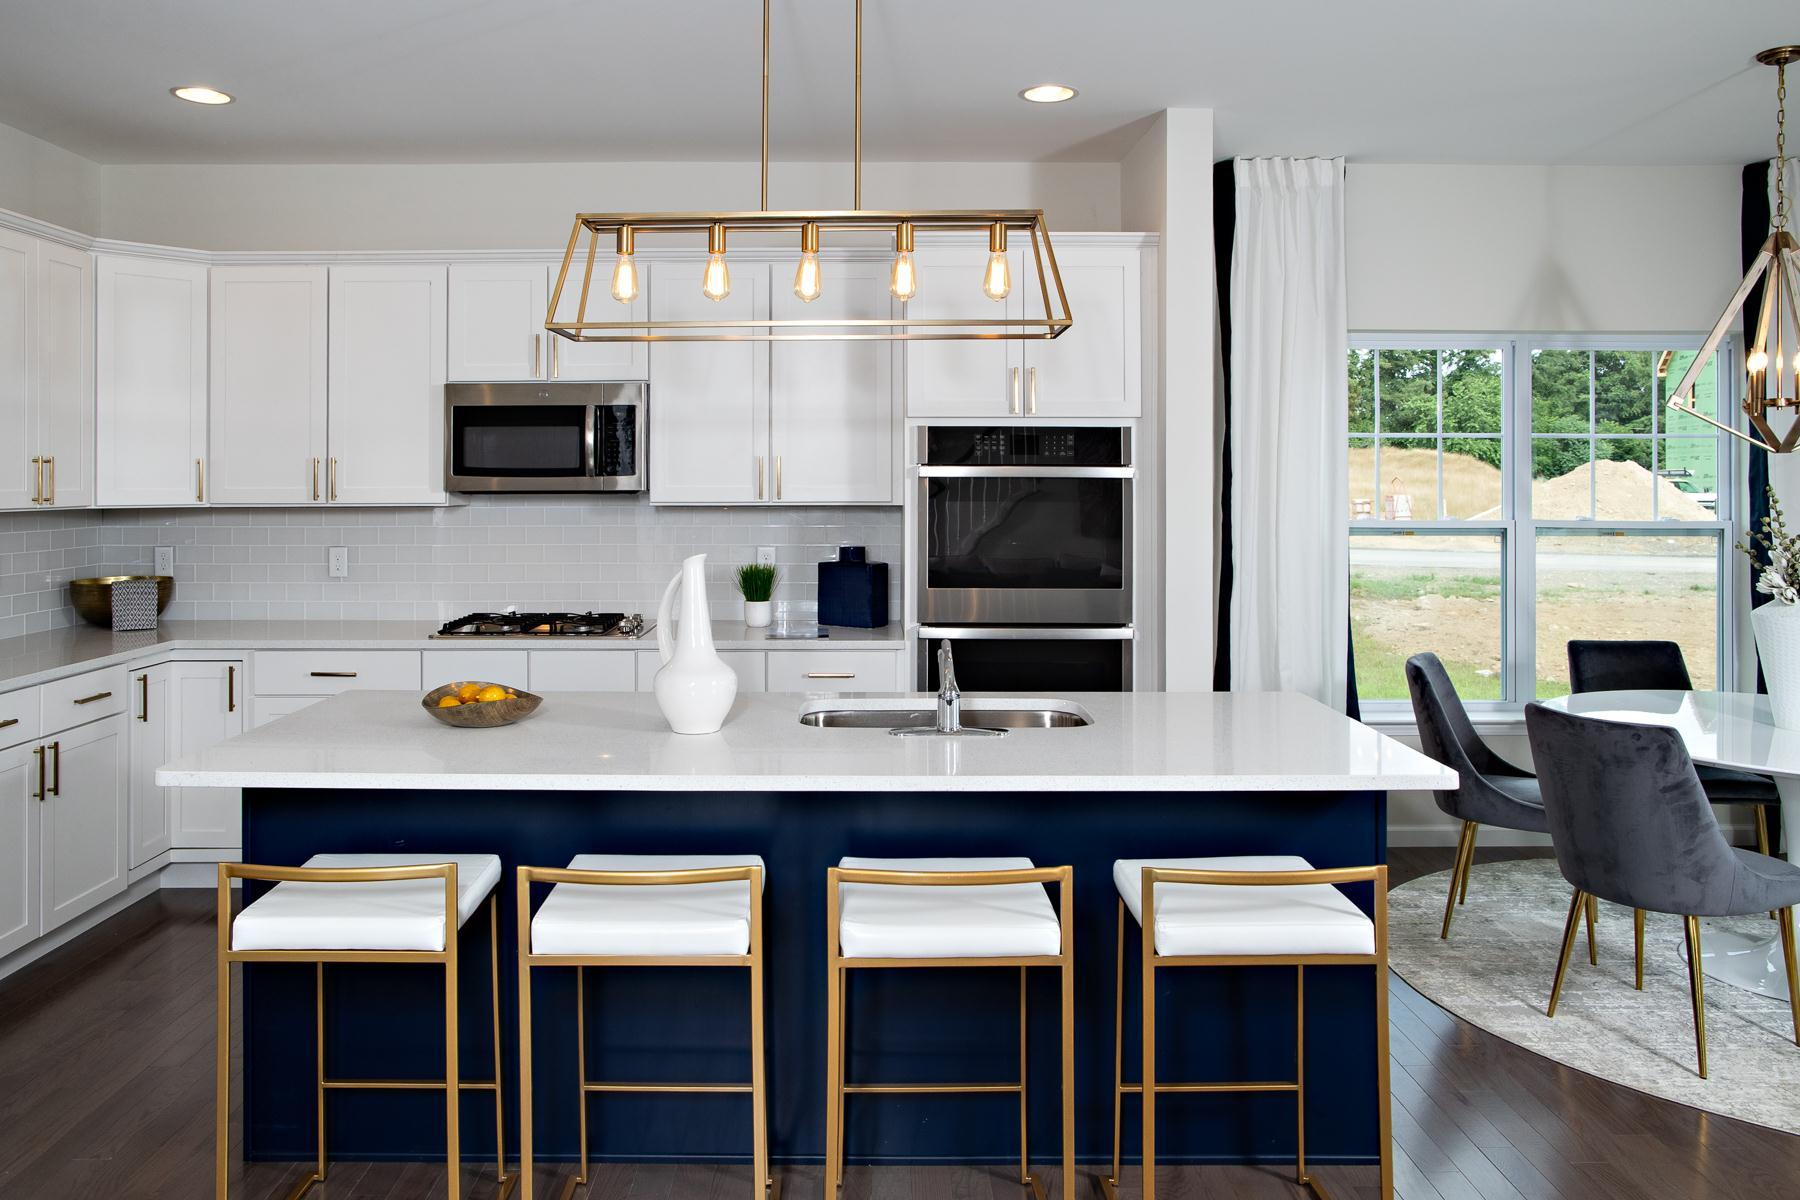 Kitchen featured in the Clark-The Glens By Sleight Farm at LaGrange in Dutchess County, NY